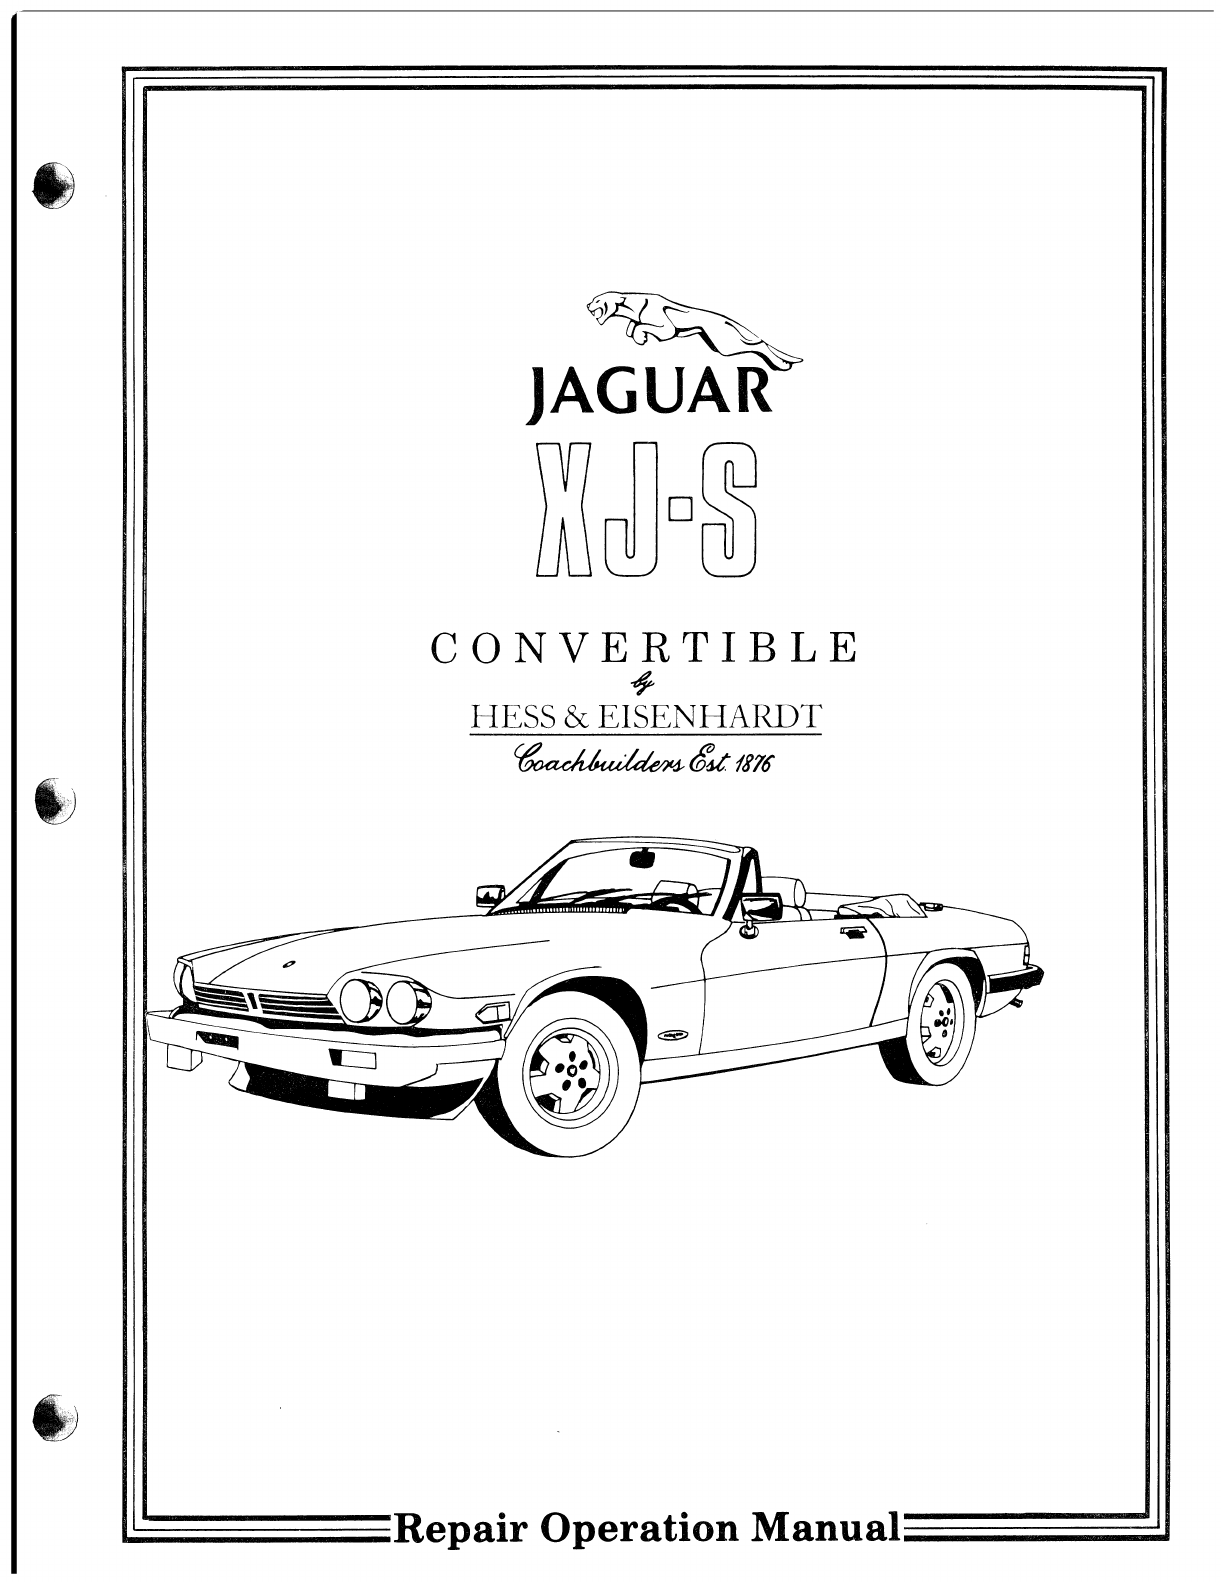 Jaguar XJS Workshop Manual PDF